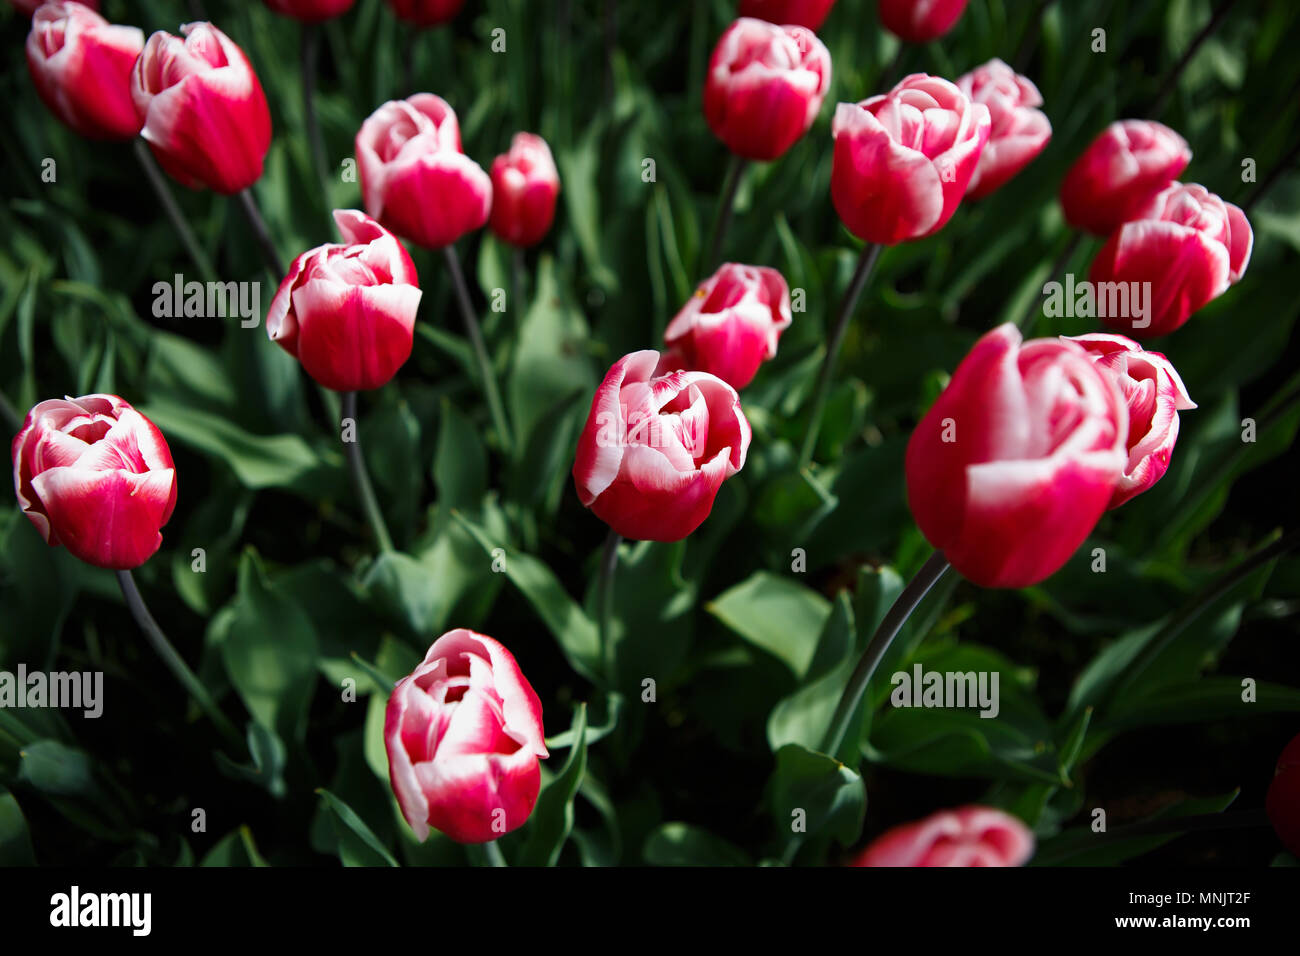 Beautiful Colorful Red White Tulip Flowers Bloom In Spring Garden